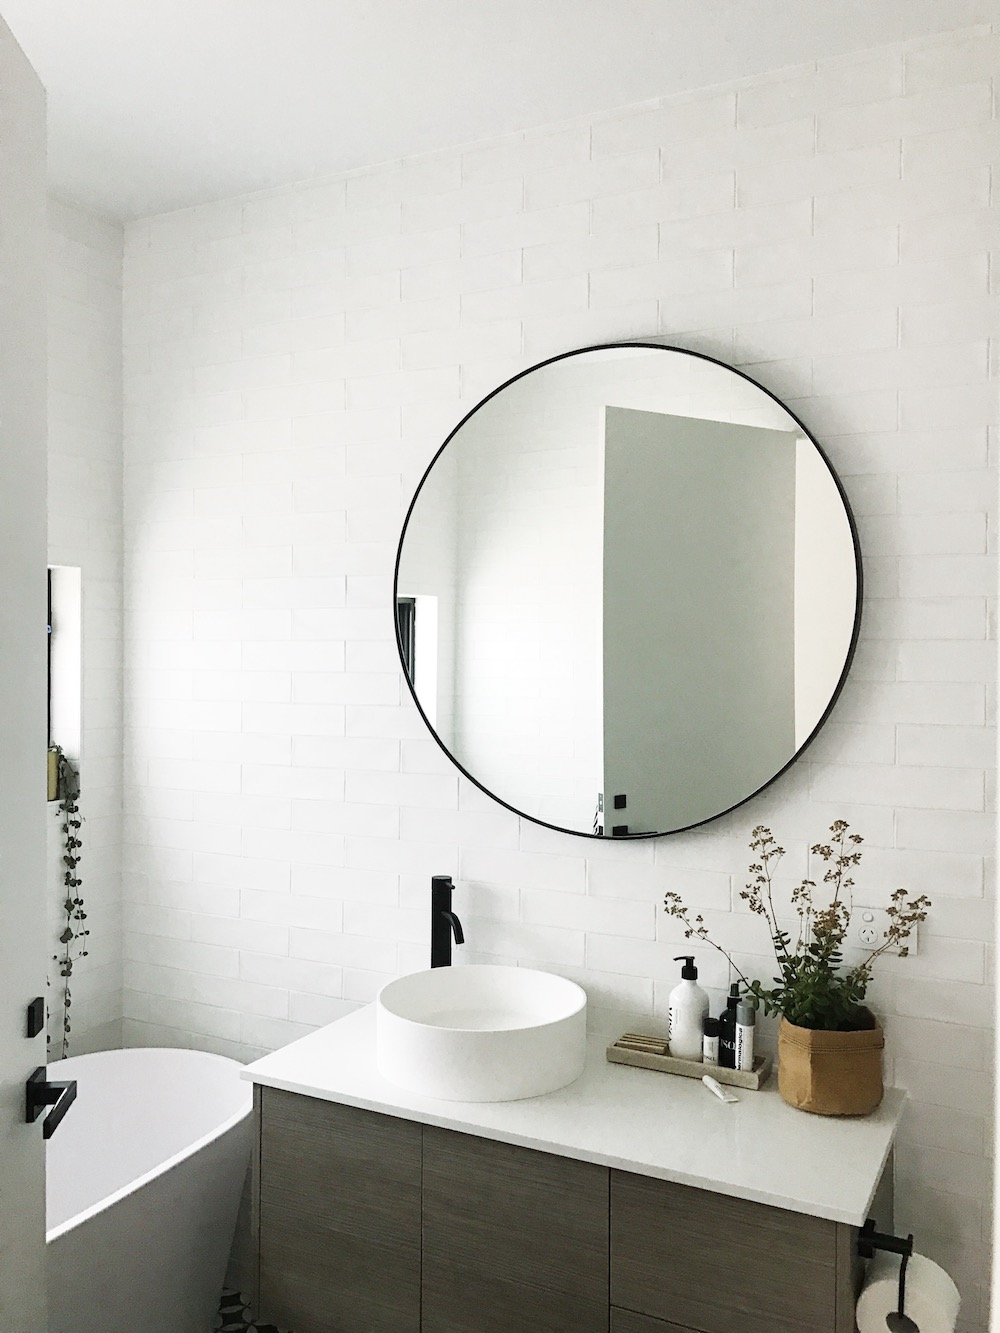 Gina 39 s home black and white bathroom reveal style curator - Round mirror over bathroom vanity ...